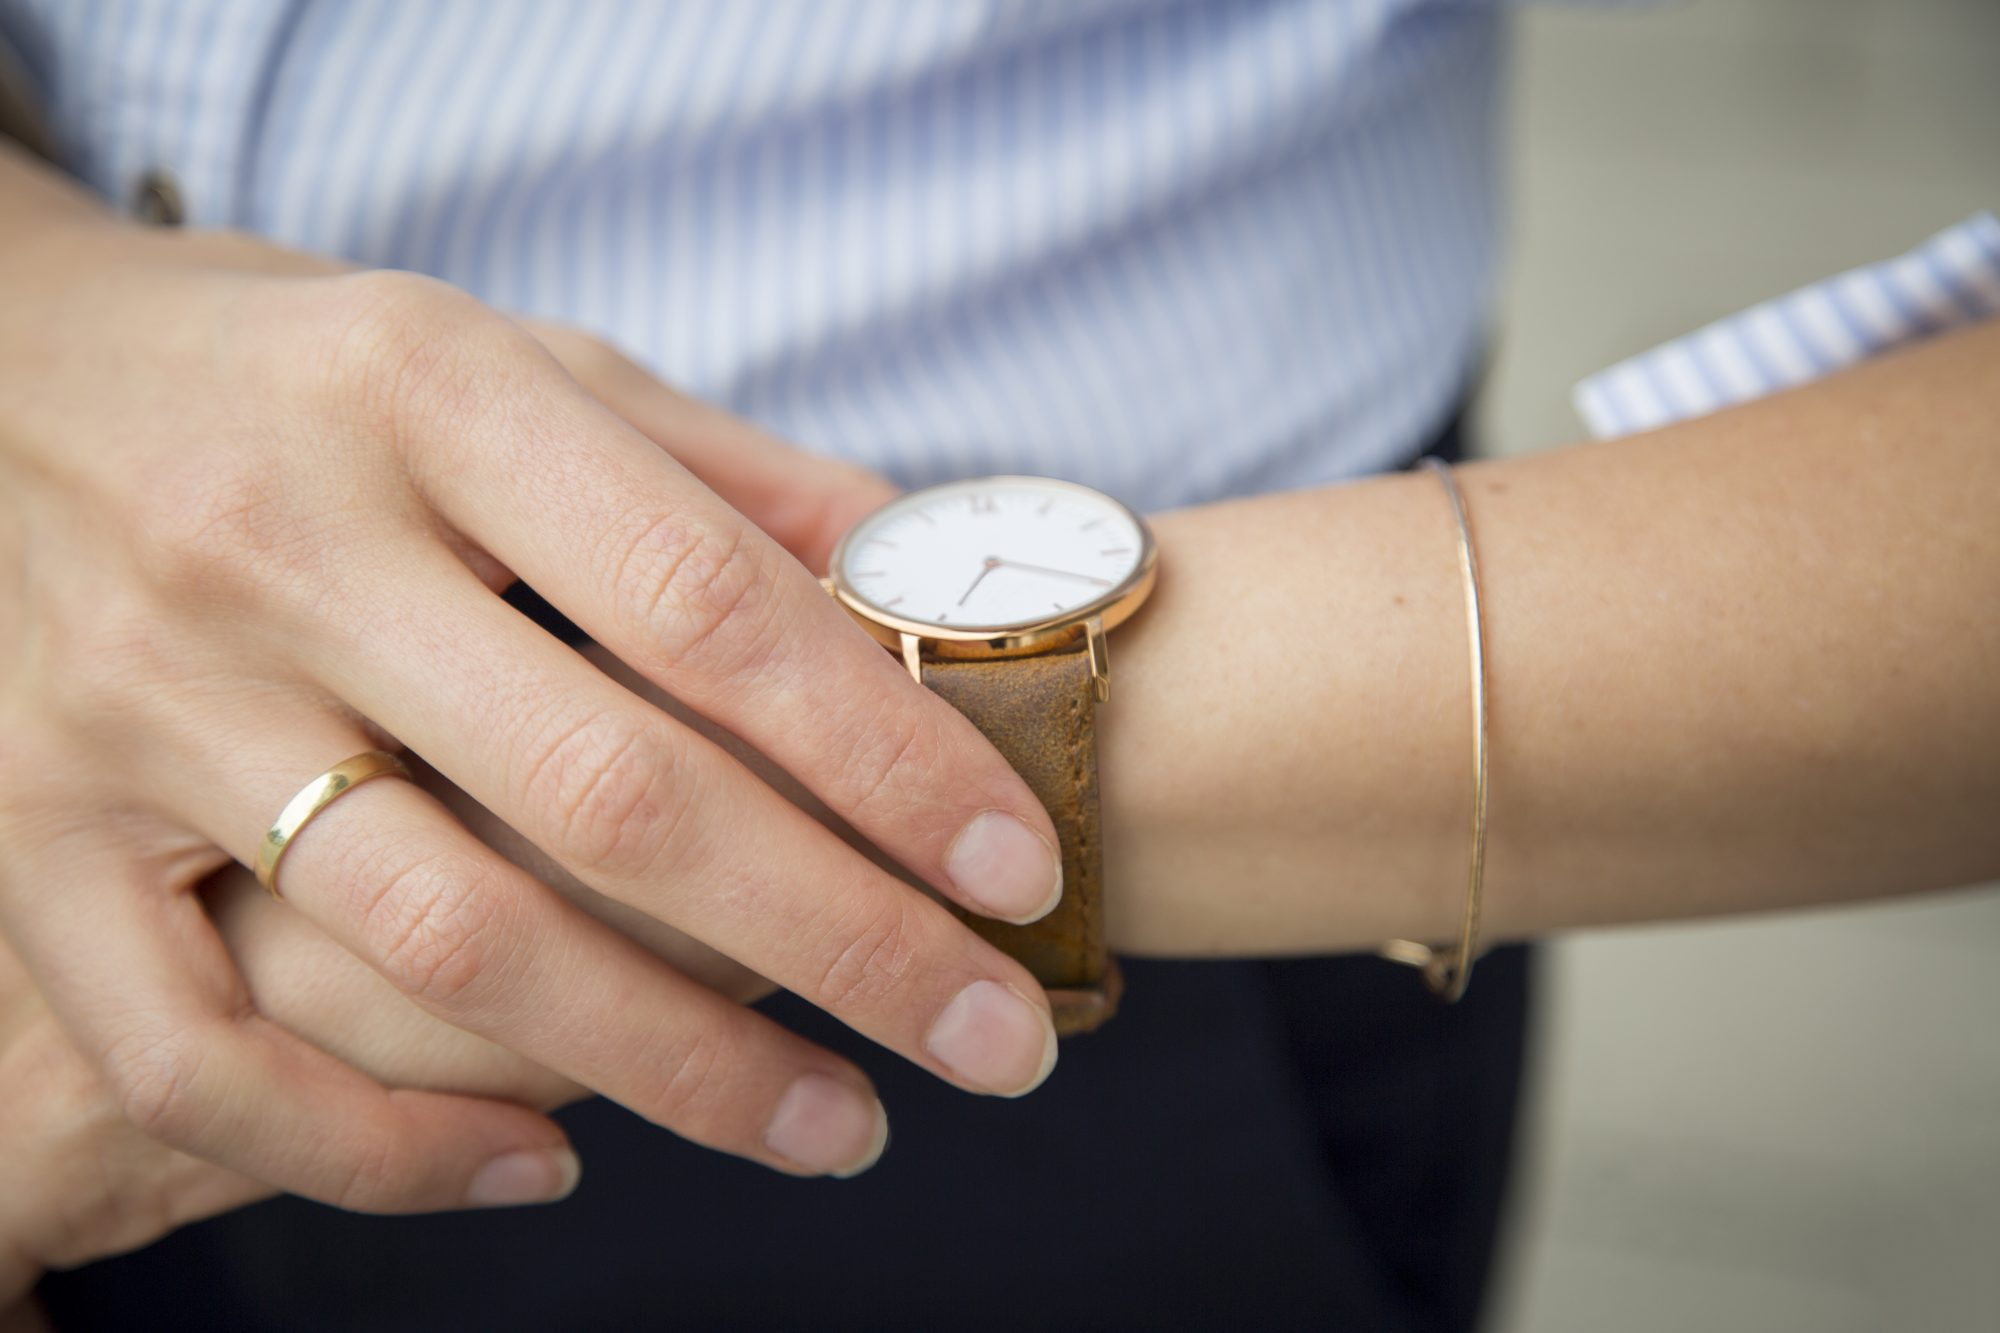 Woman Looking at Watch